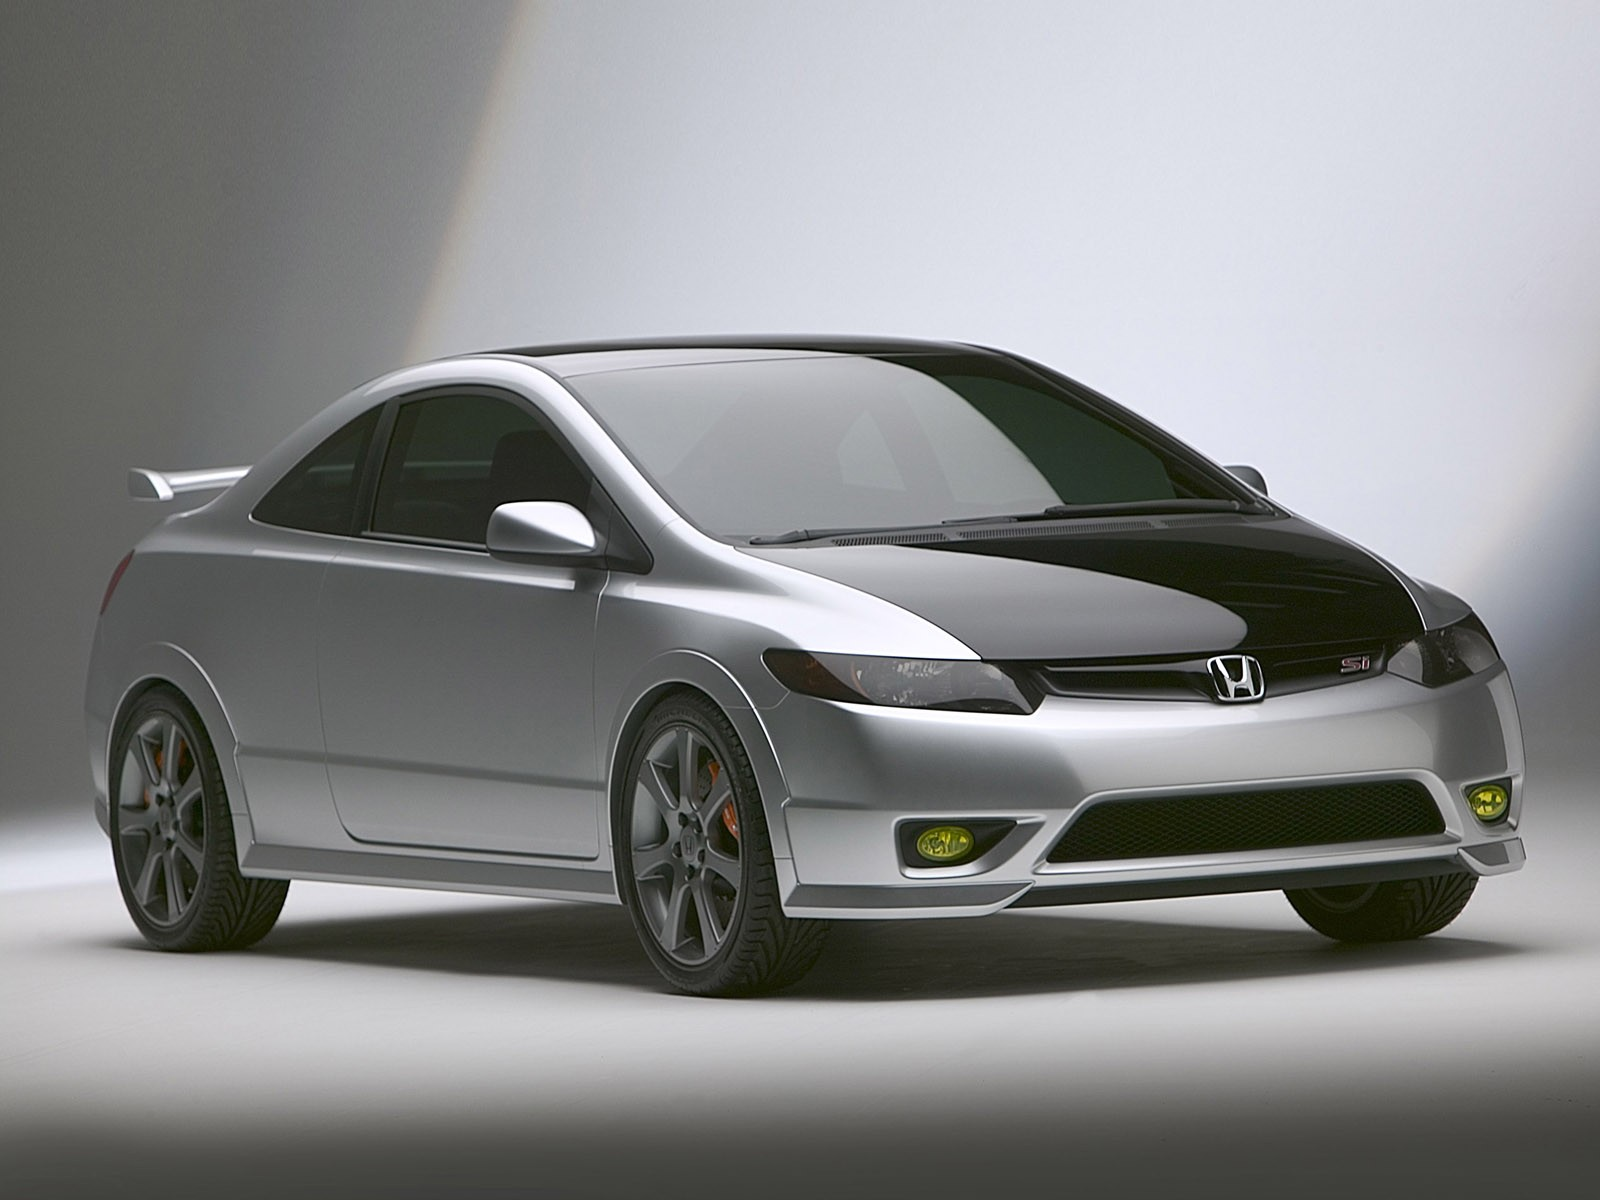 cool car wallpapers honda civic si. Black Bedroom Furniture Sets. Home Design Ideas